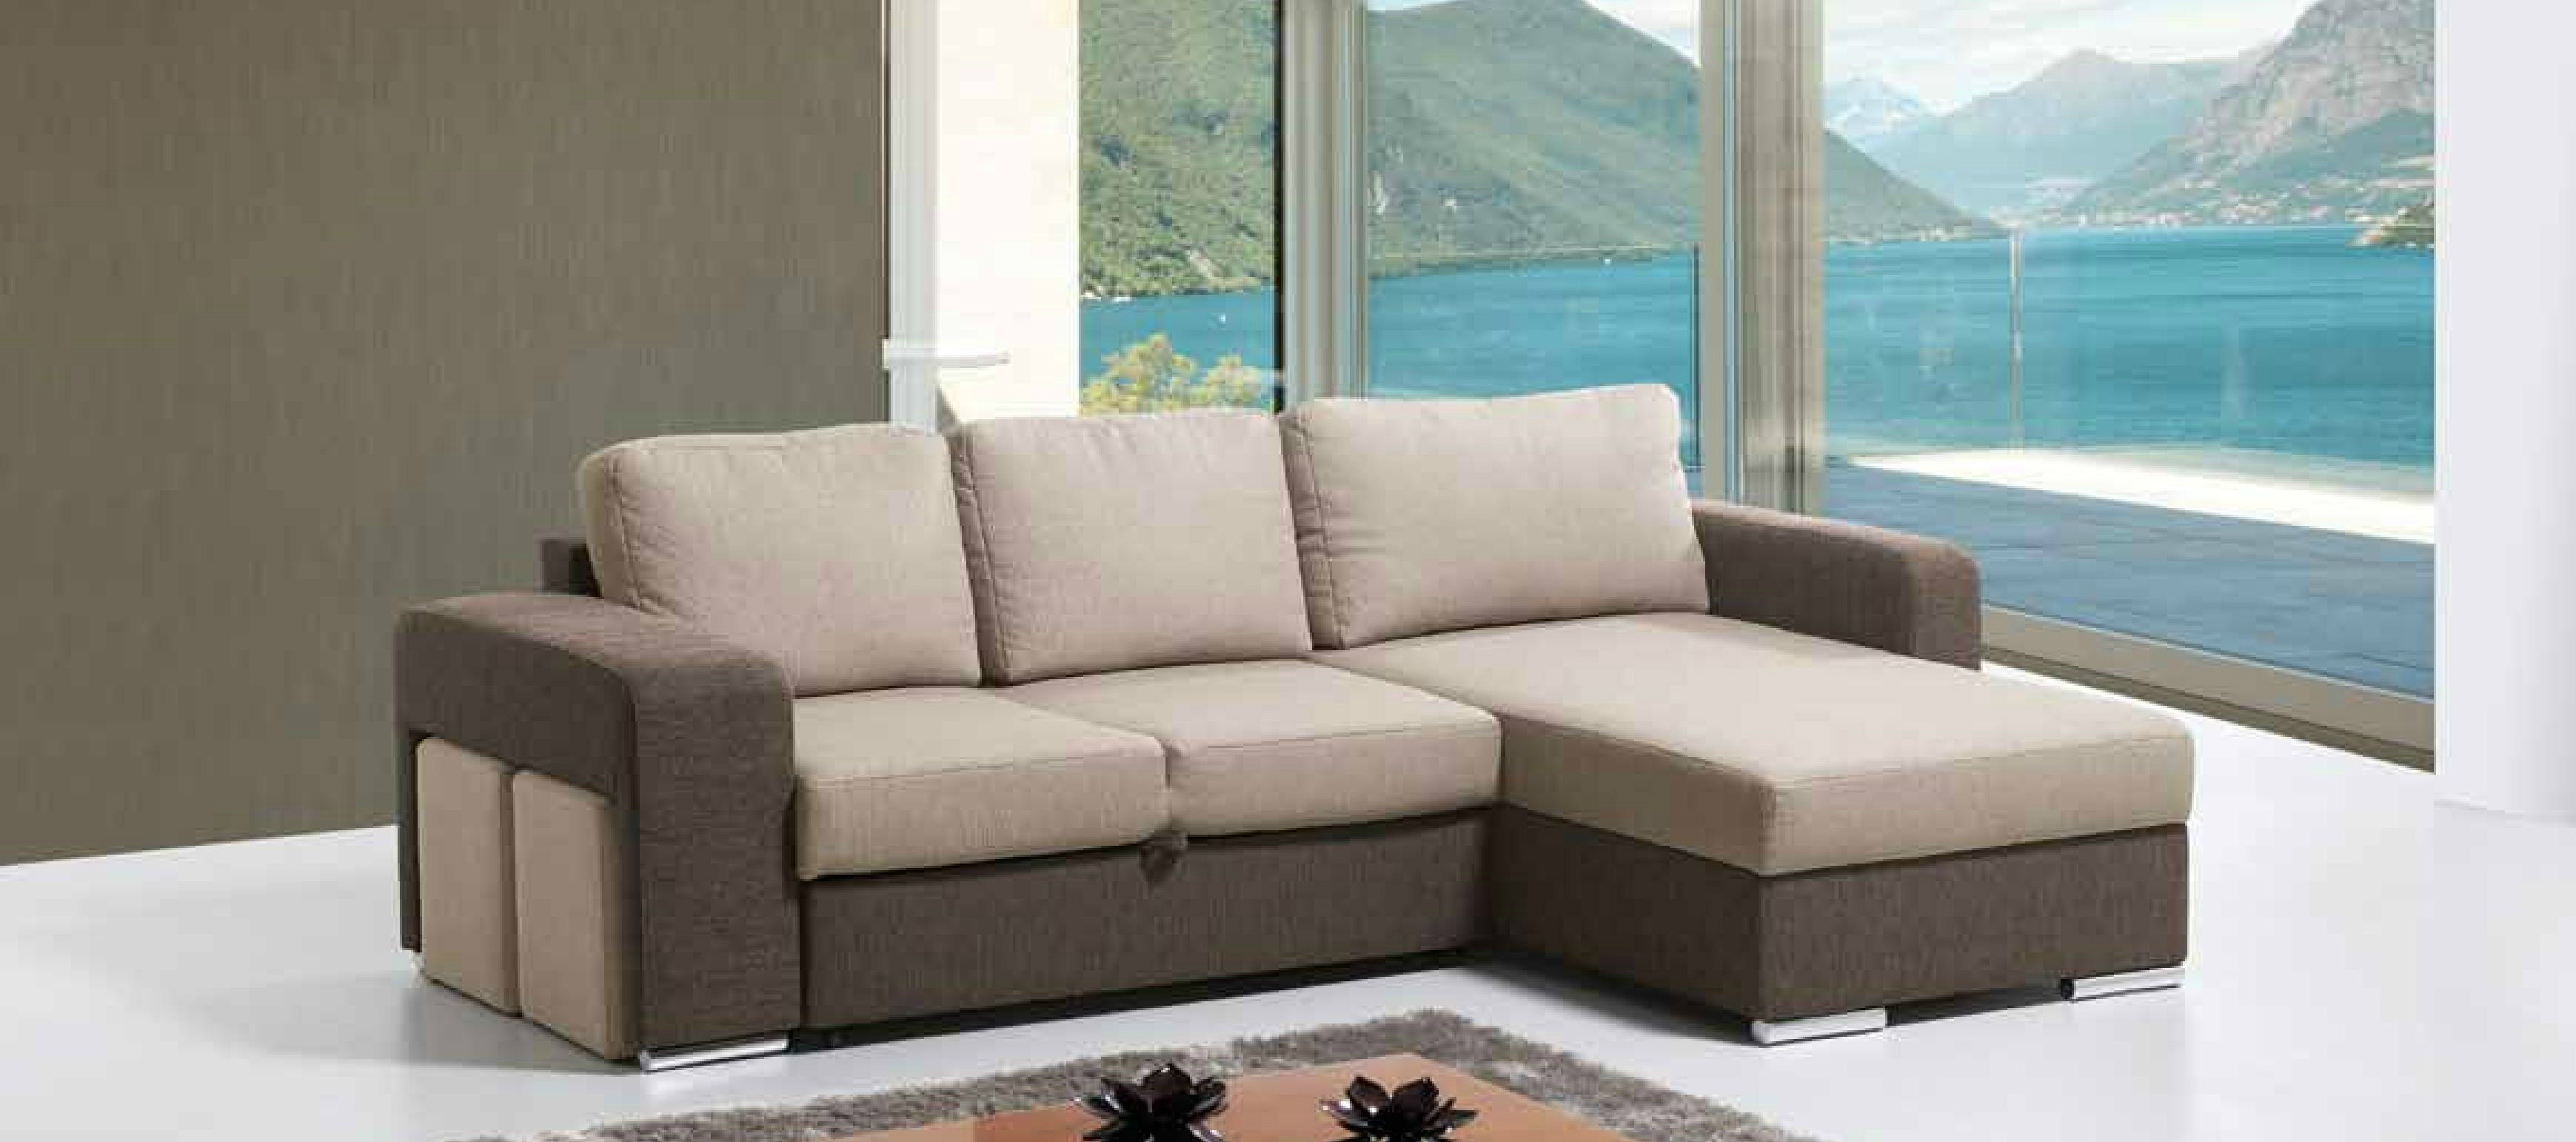 Sof calvin chaise long mundo do sof for Mundo sofas